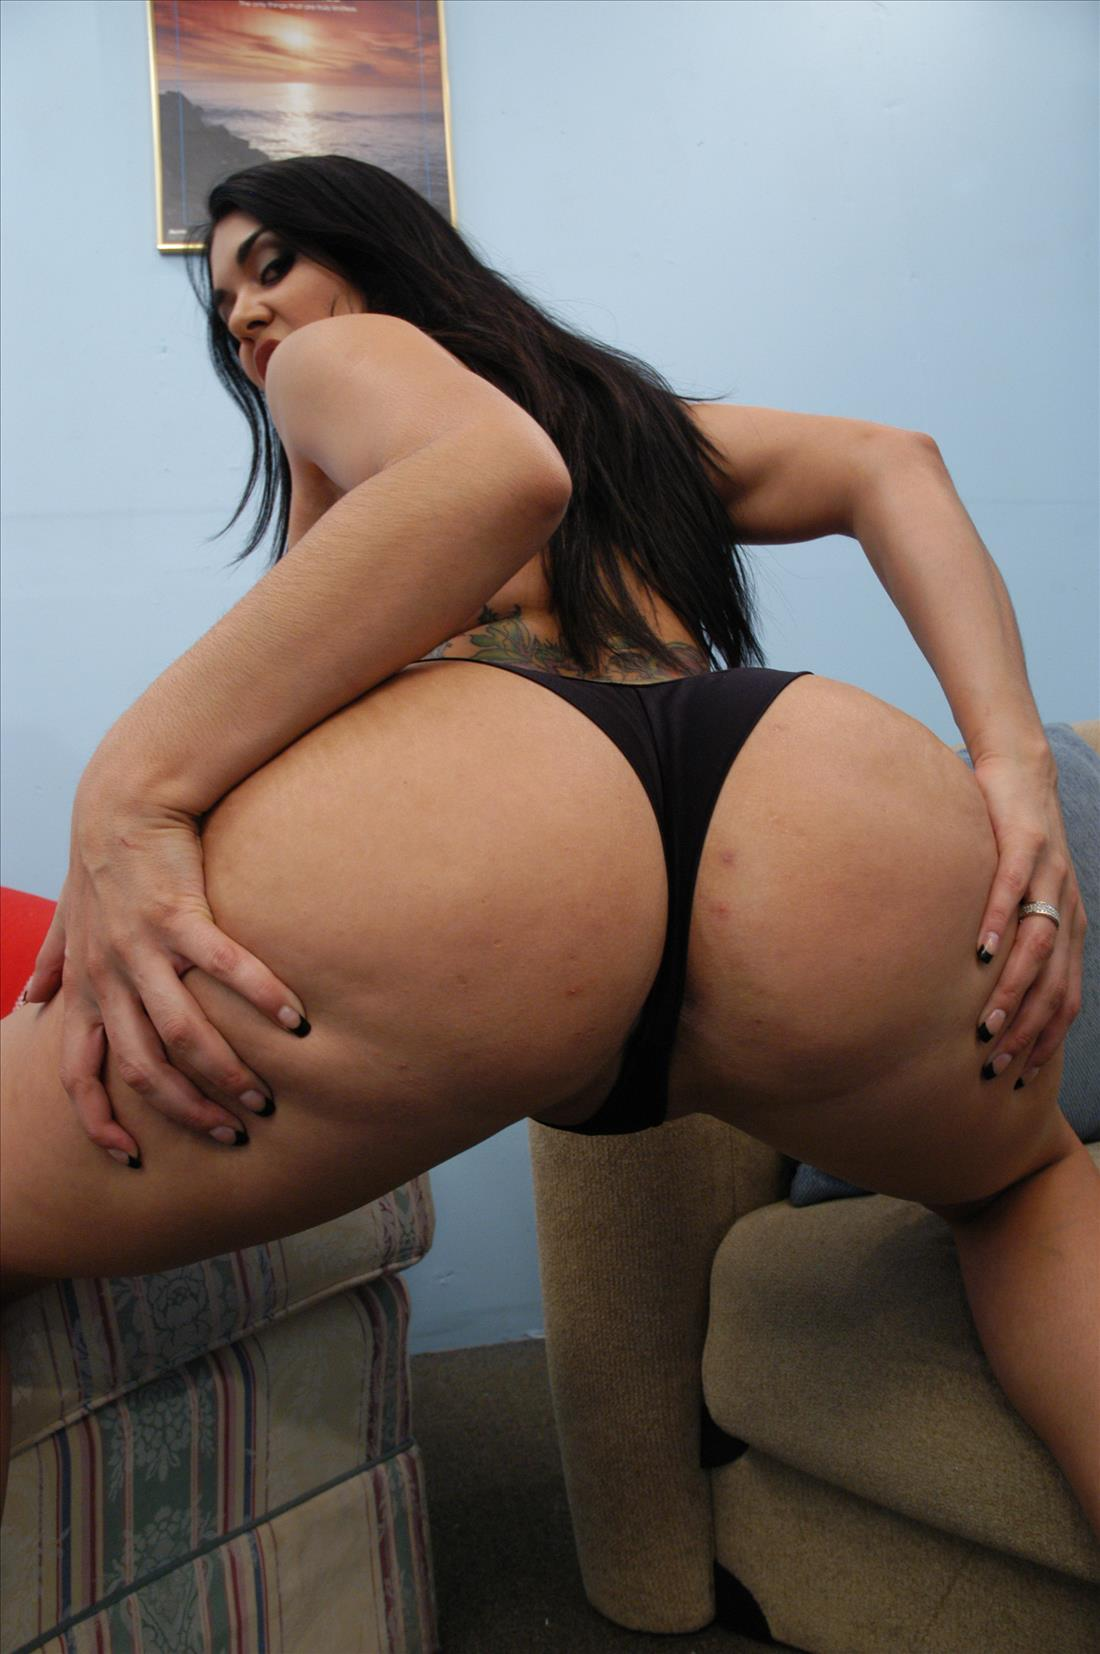 Olivia-Olovely-Bubble-Butt-Bonanza 3  Morefunforyou-7735